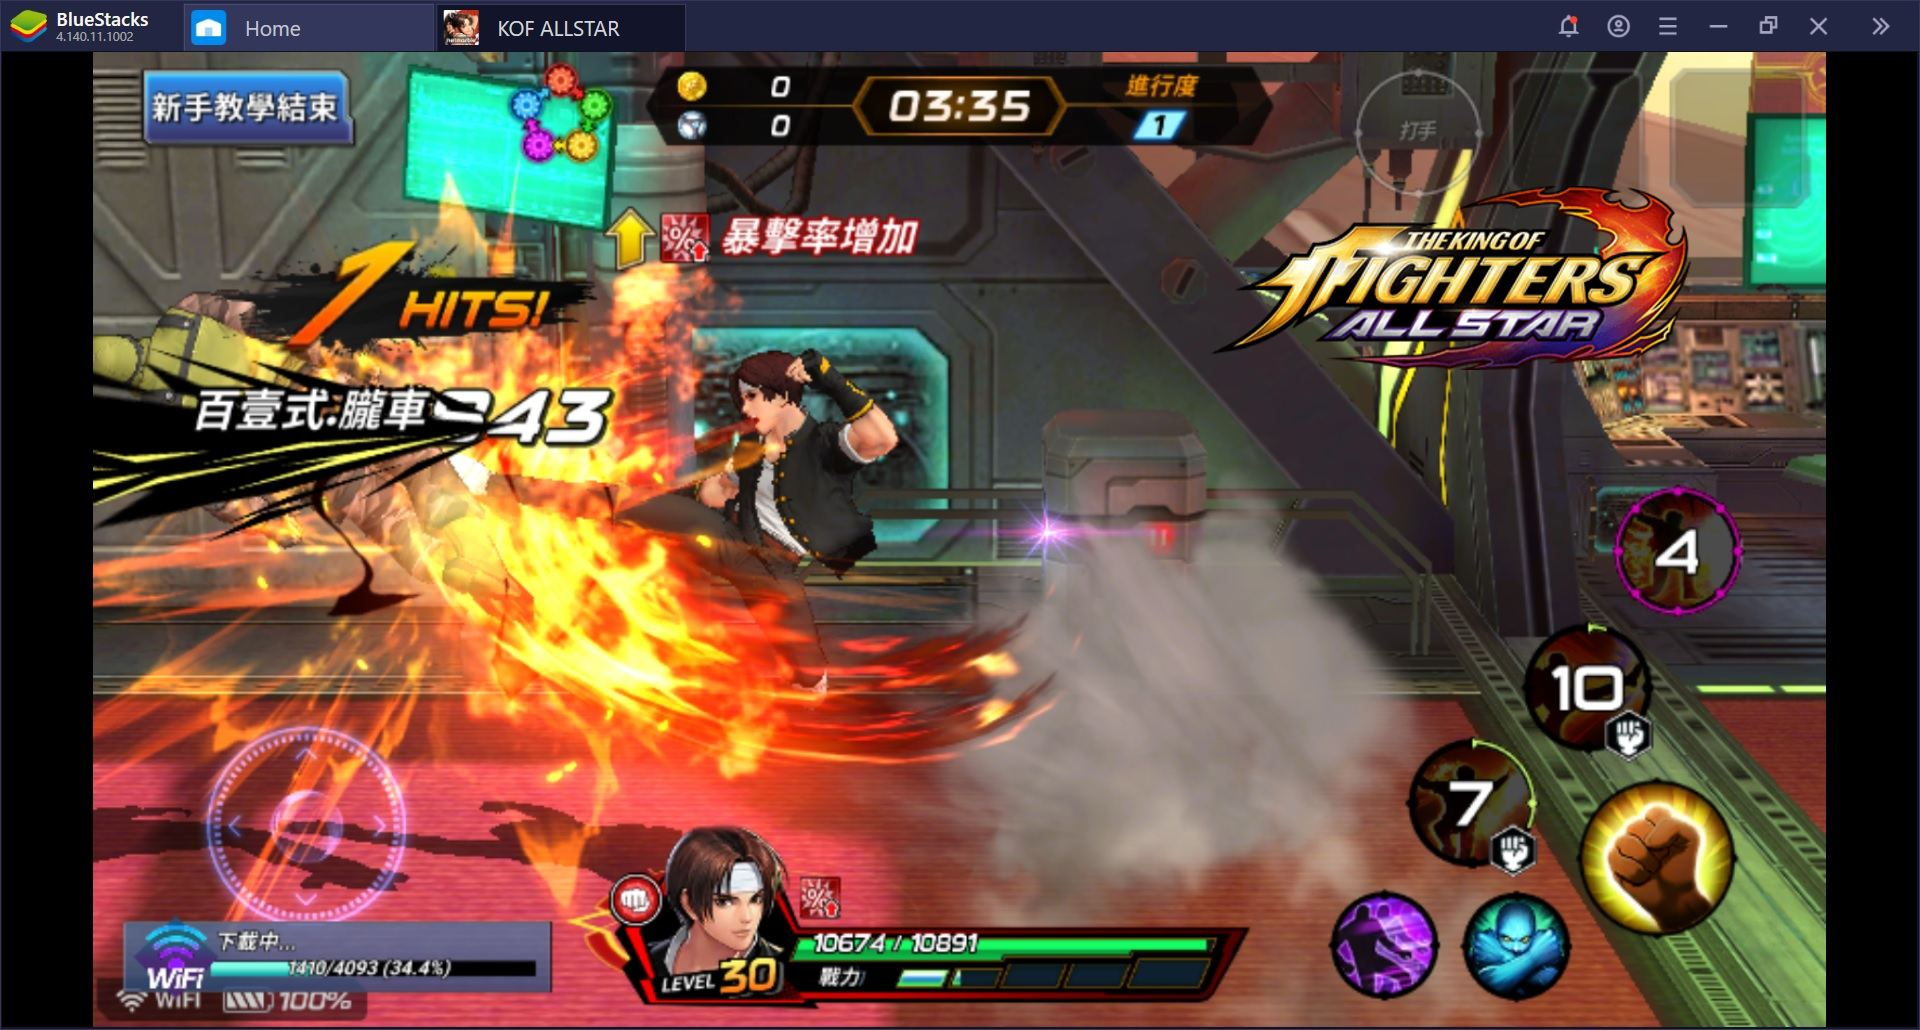 使用BlueStacks體驗手機動作 RPG鉅作 The King of Fighters ALLSTAR